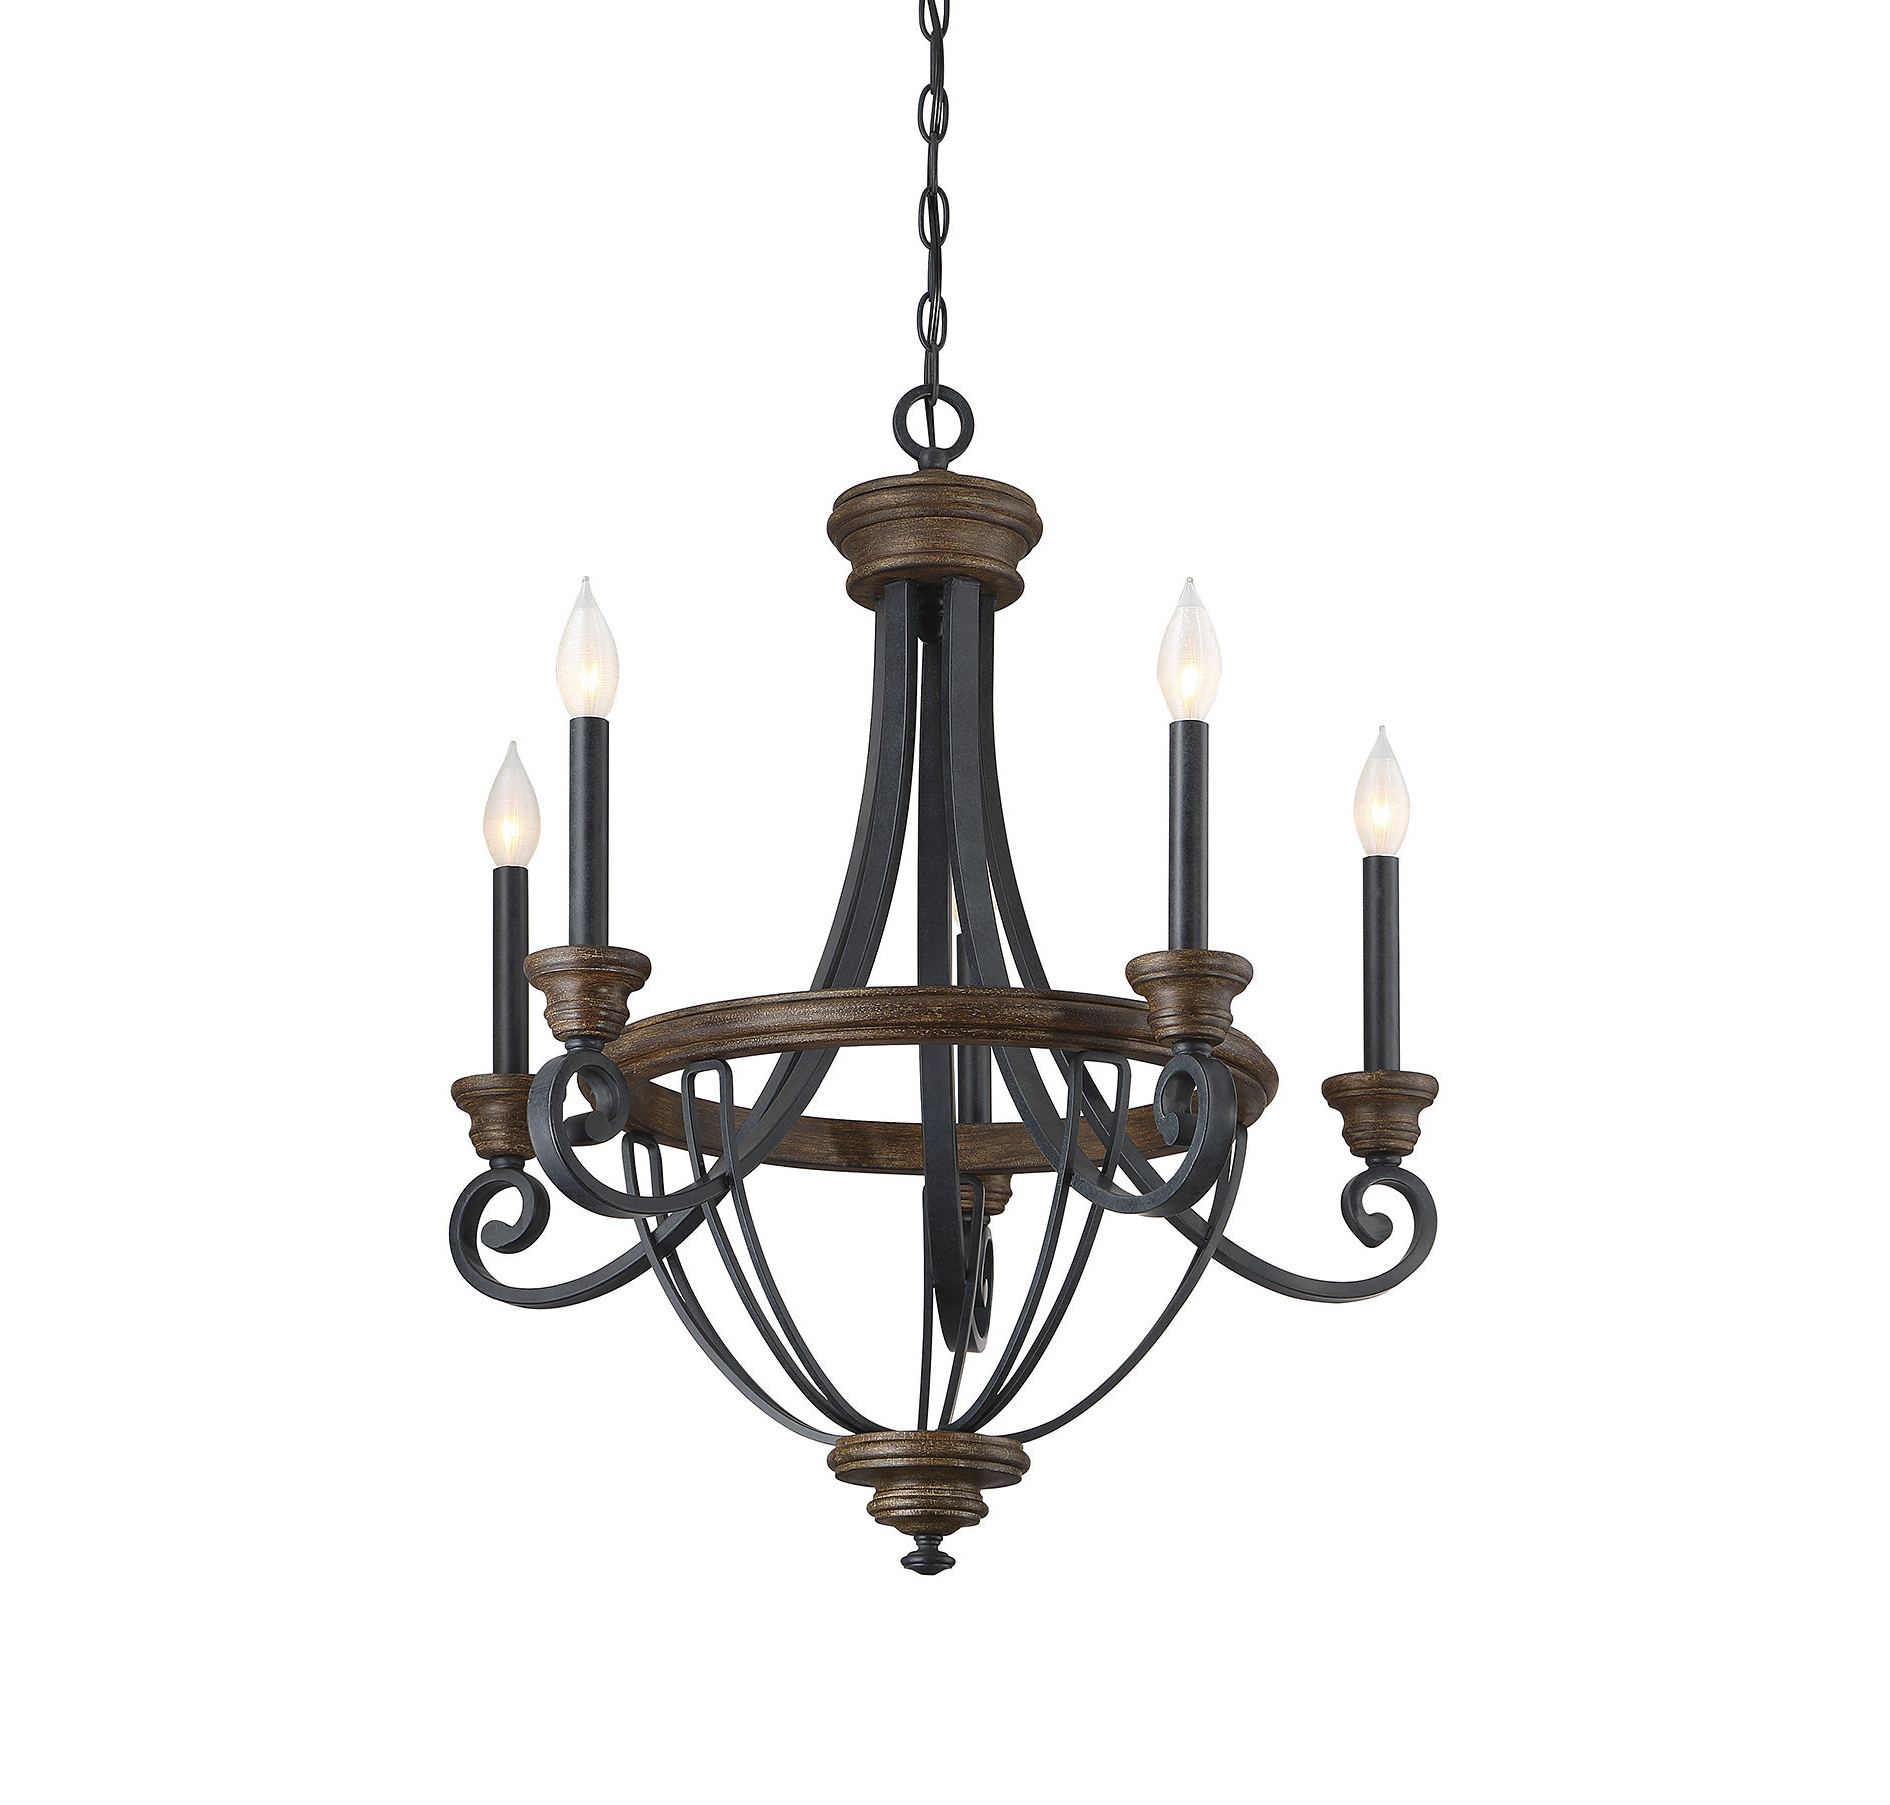 Nanteuil 5 Light Empire Chandelier Within 2020 Kenna 5 Light Empire Chandeliers (View 18 of 25)